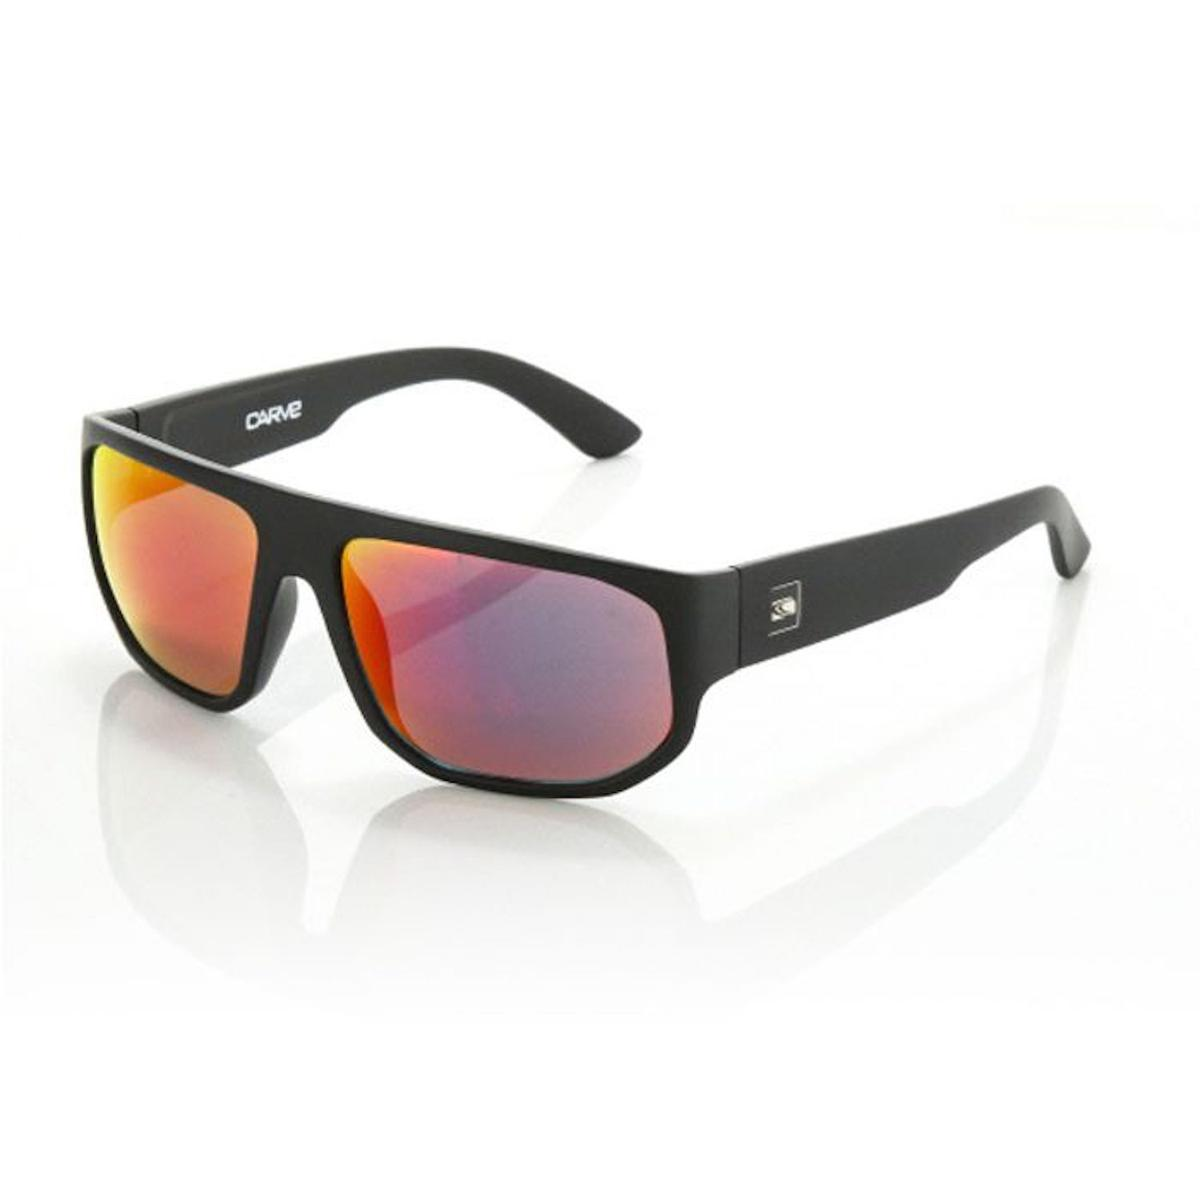 CARVE Modulator Sunglasses